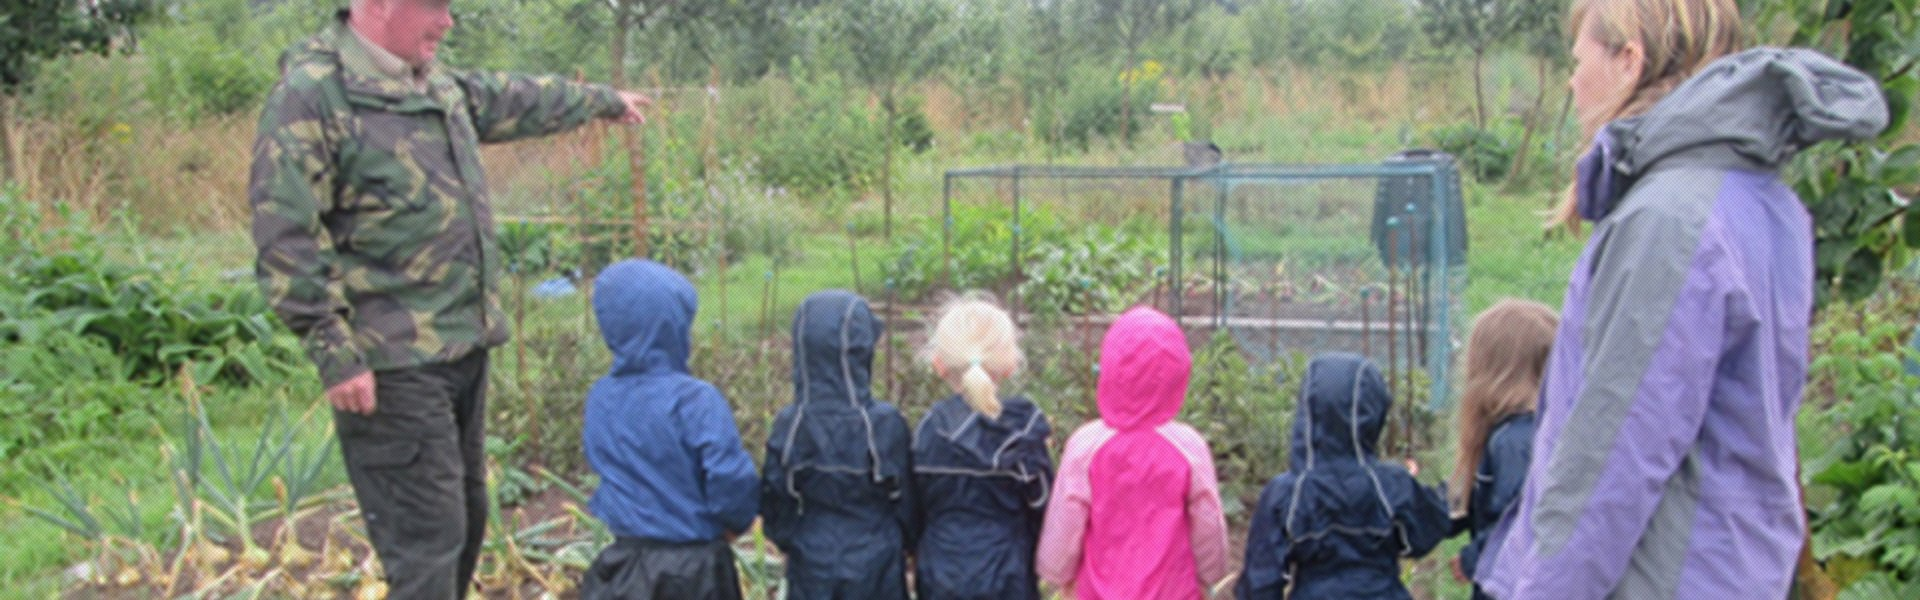 Children in outdoor clothes, in an outdoor area with a carer